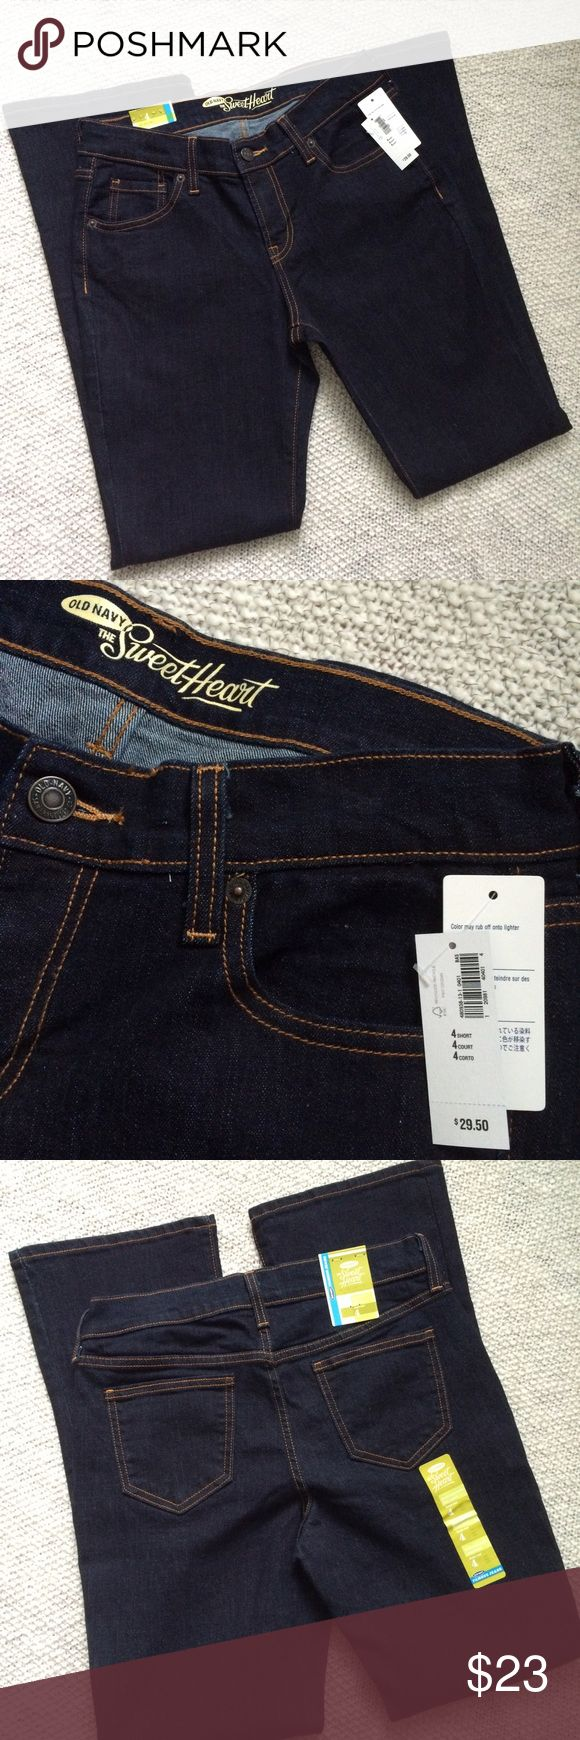 NWT Old Navy Sweetheart Bootcut Dark Wash Rise 9 Inseam 30. Size is 4 short. Old Navy Jeans Boot Cut